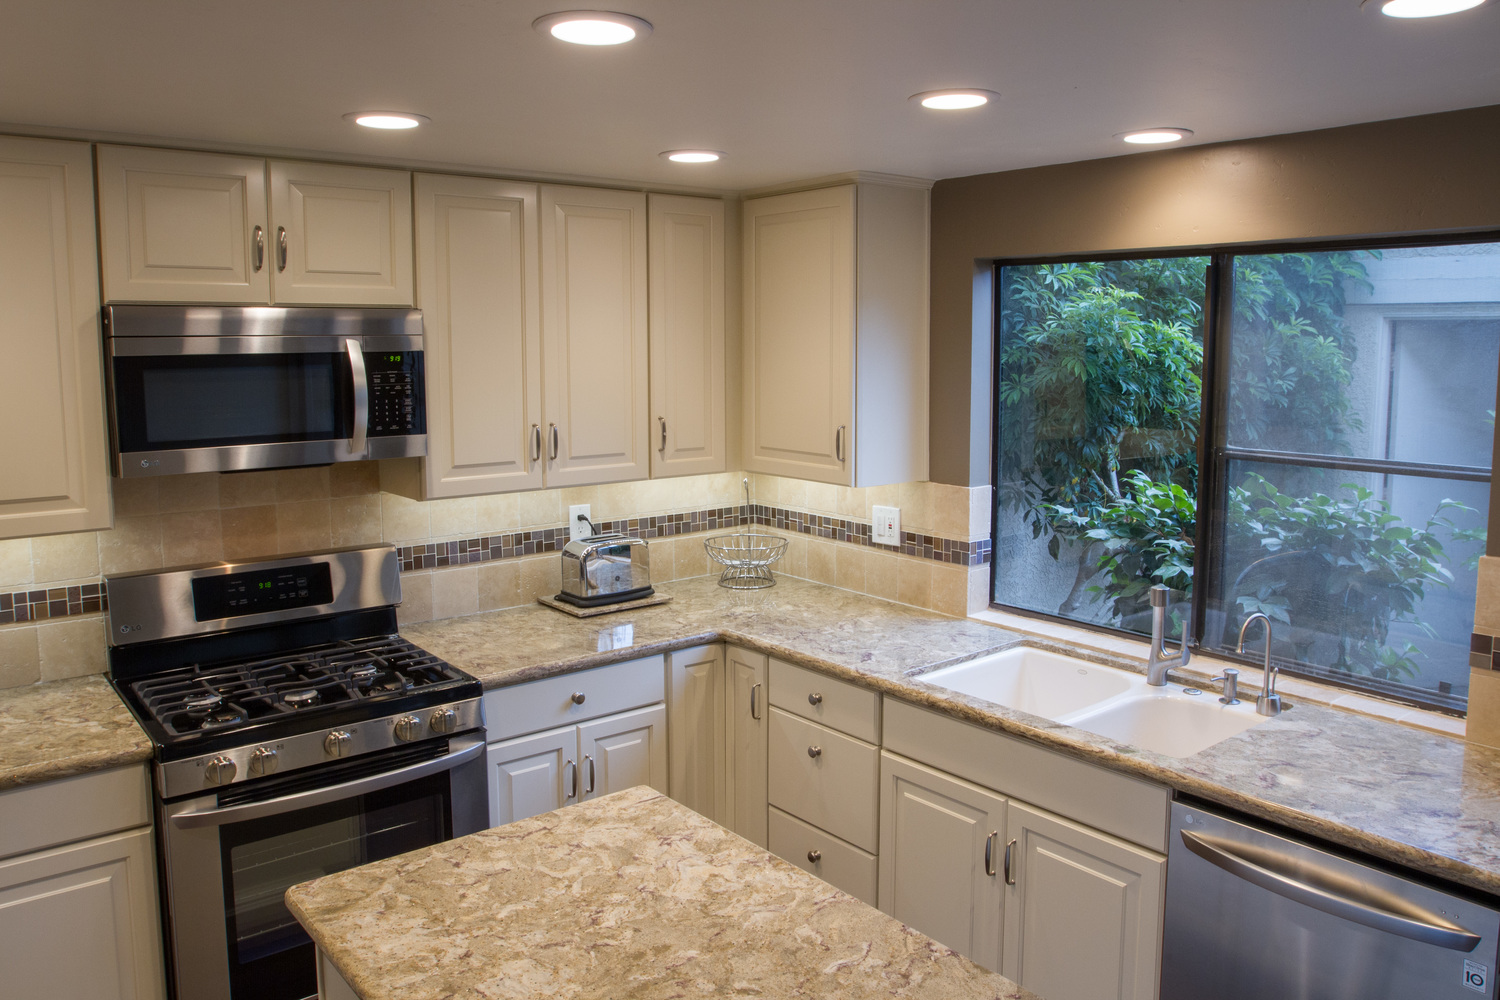 Top Guidelines Of How To Paint Old Kitchen Cabinets - How-tos - Diy